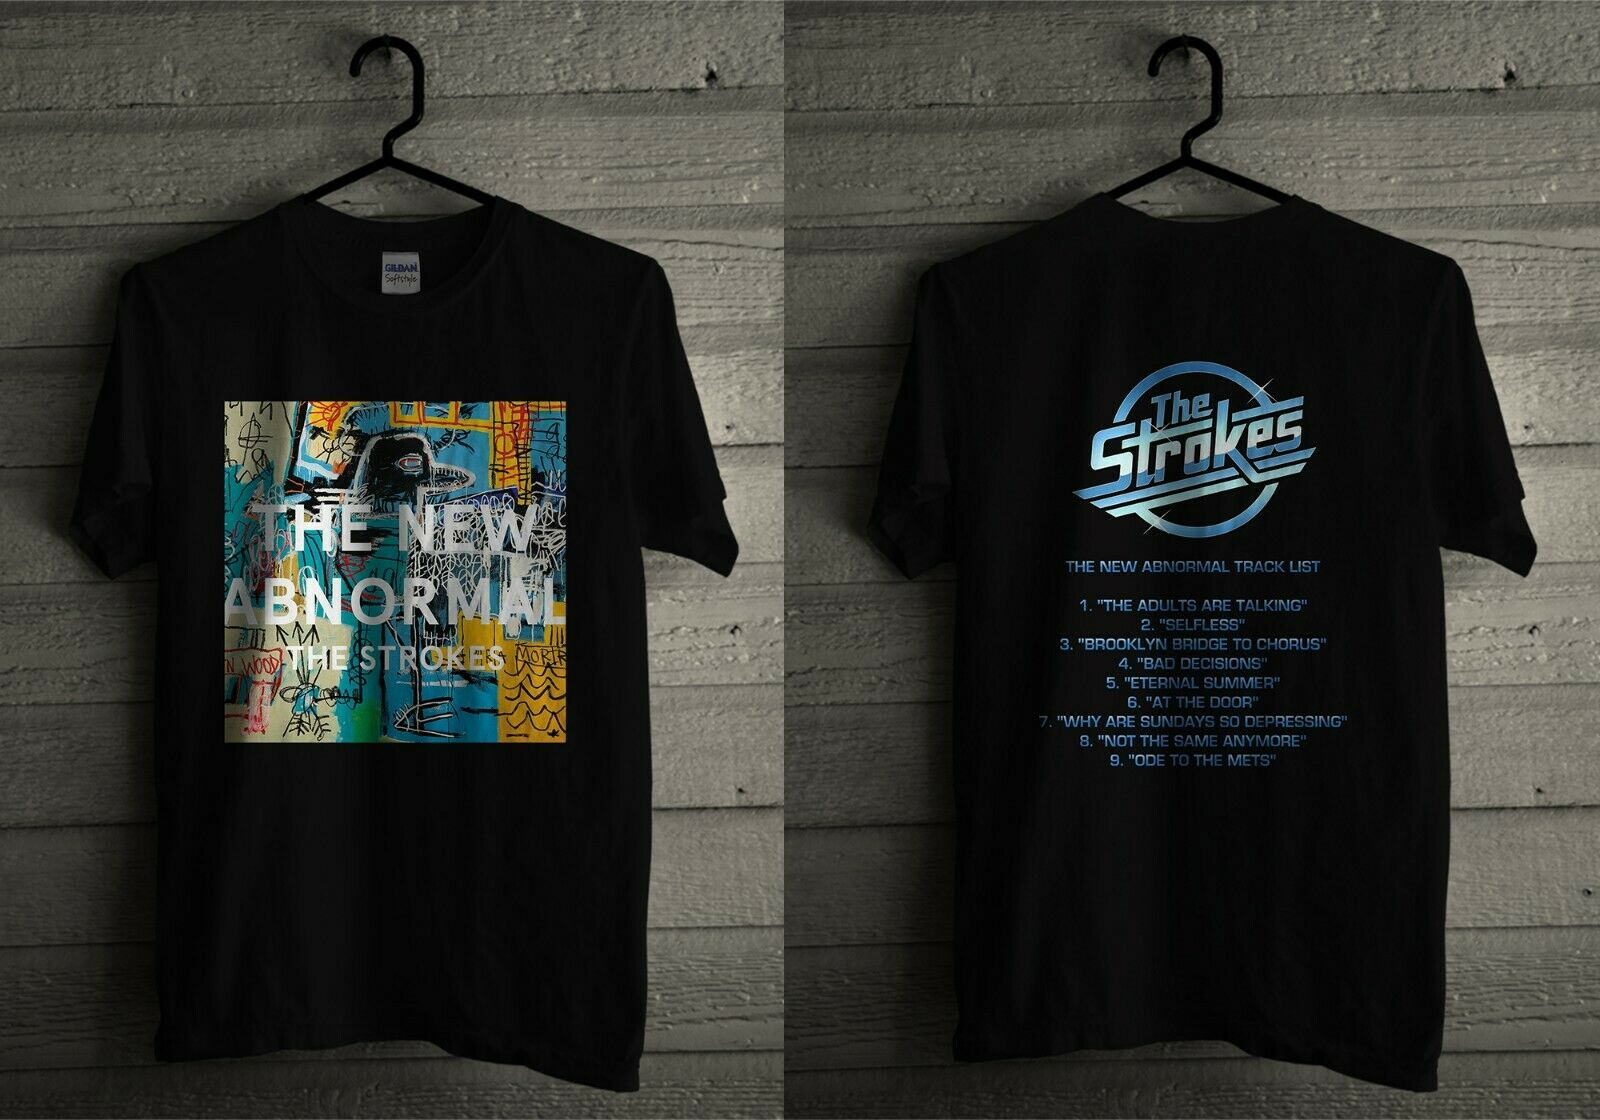 The New Abnormal The Strokes Album Cover T Shirt With Track List